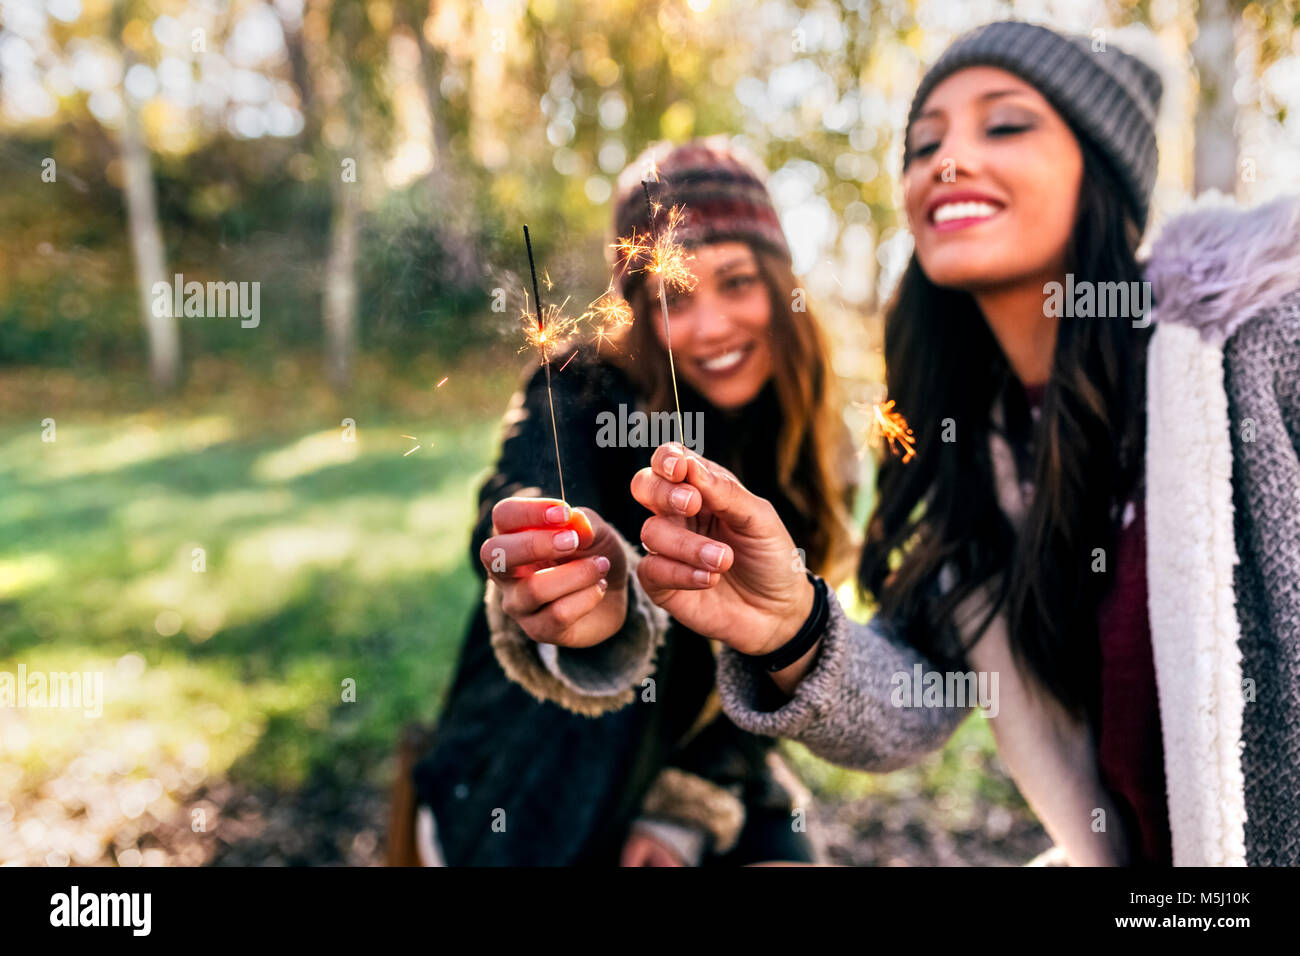 Two gorgeous women having fun with sparklers in an autumnal forest - Stock Image